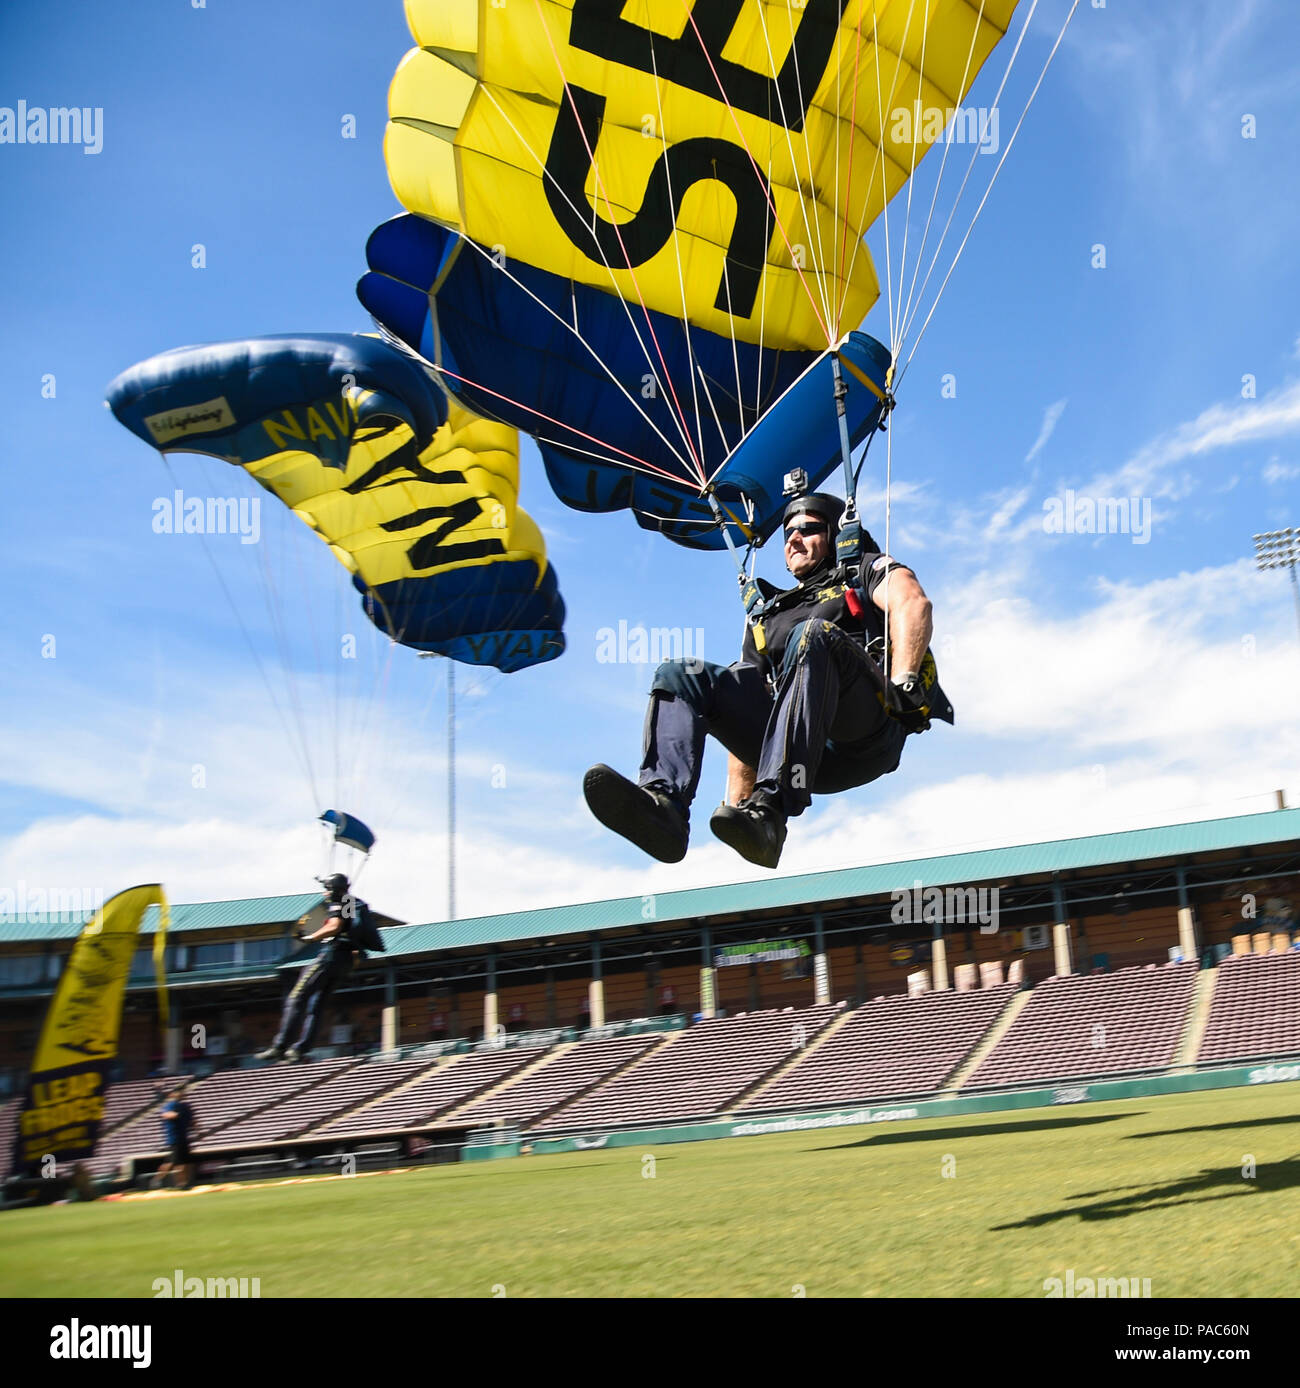 160304-N-VY375-089 LAKE ELSINORE, Calif. (March 4, 2016) Special Warfare Operator 1st Class Brandon Peterson, a member of the U.S. Navy parachute demonstration team the Leap Frogs, swoops in for a landing during a training demonstration at Storm Stadium, home of the Lake Elsinore Storm minor league baseball team. (U.S. Navy photo by Hospital Corspman 1st Class Shaun Thomas/Released) - Stock Image